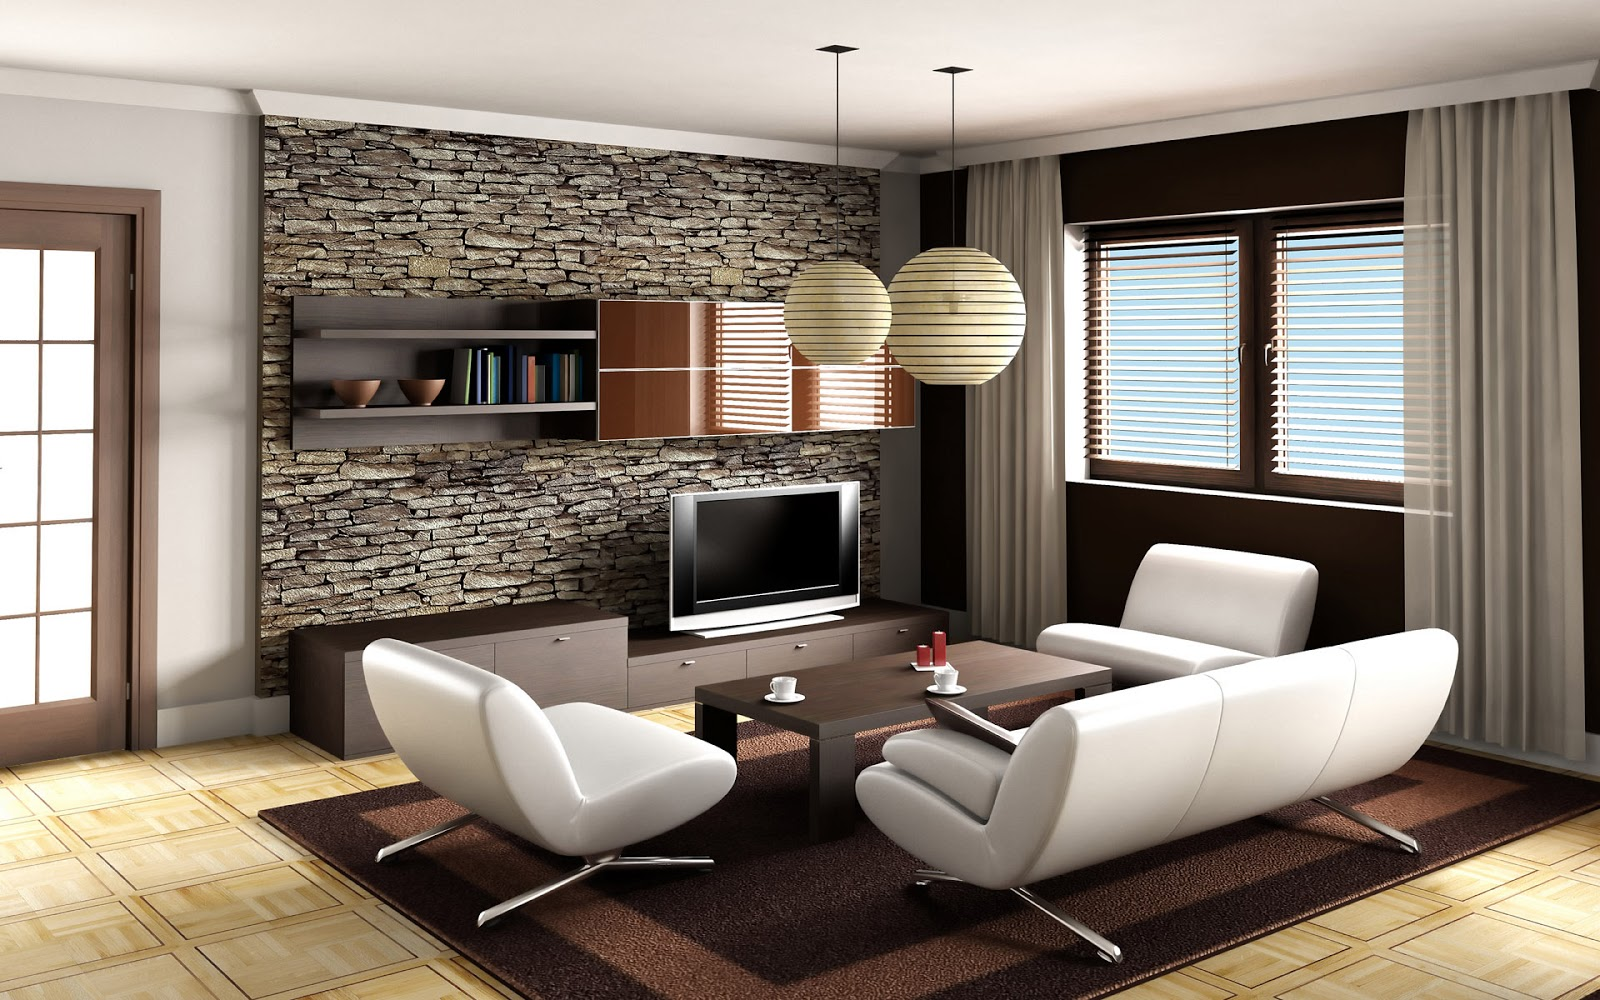 Furniture Design Living Room 3d 28+ [ home interior living room ] | living room interior dgmagnets